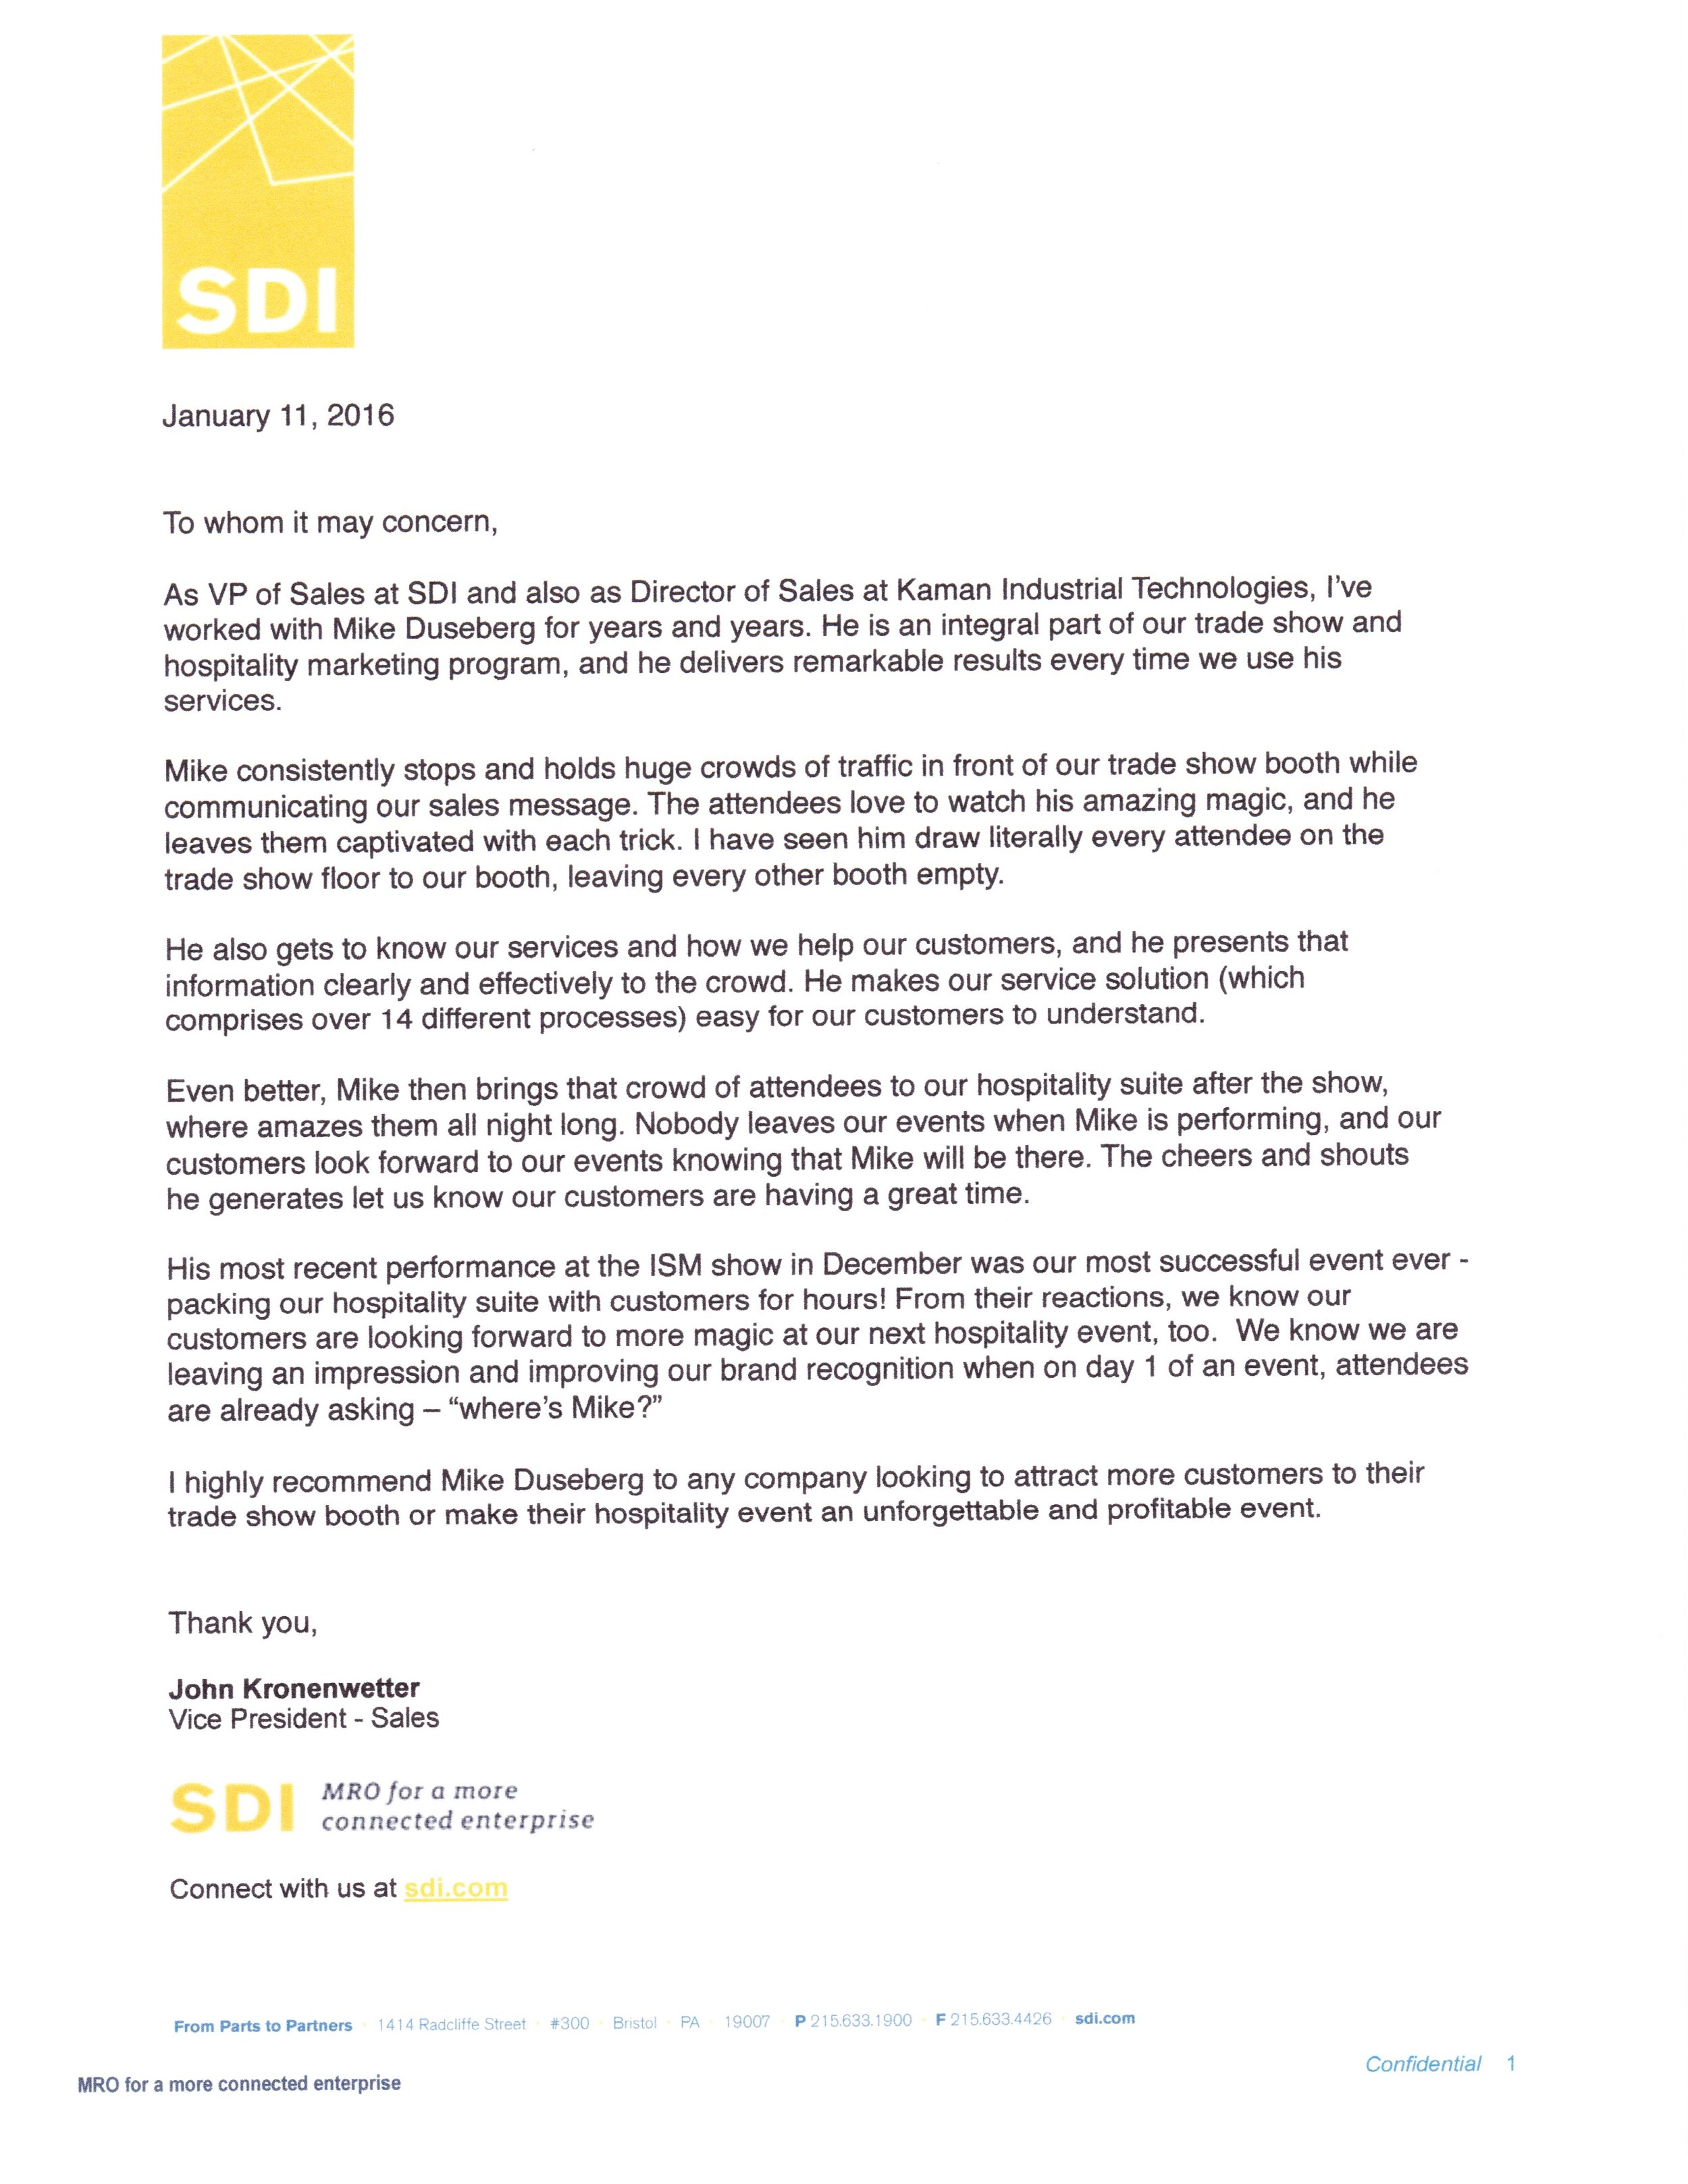 SDI Letter or Recommendation.jpeg